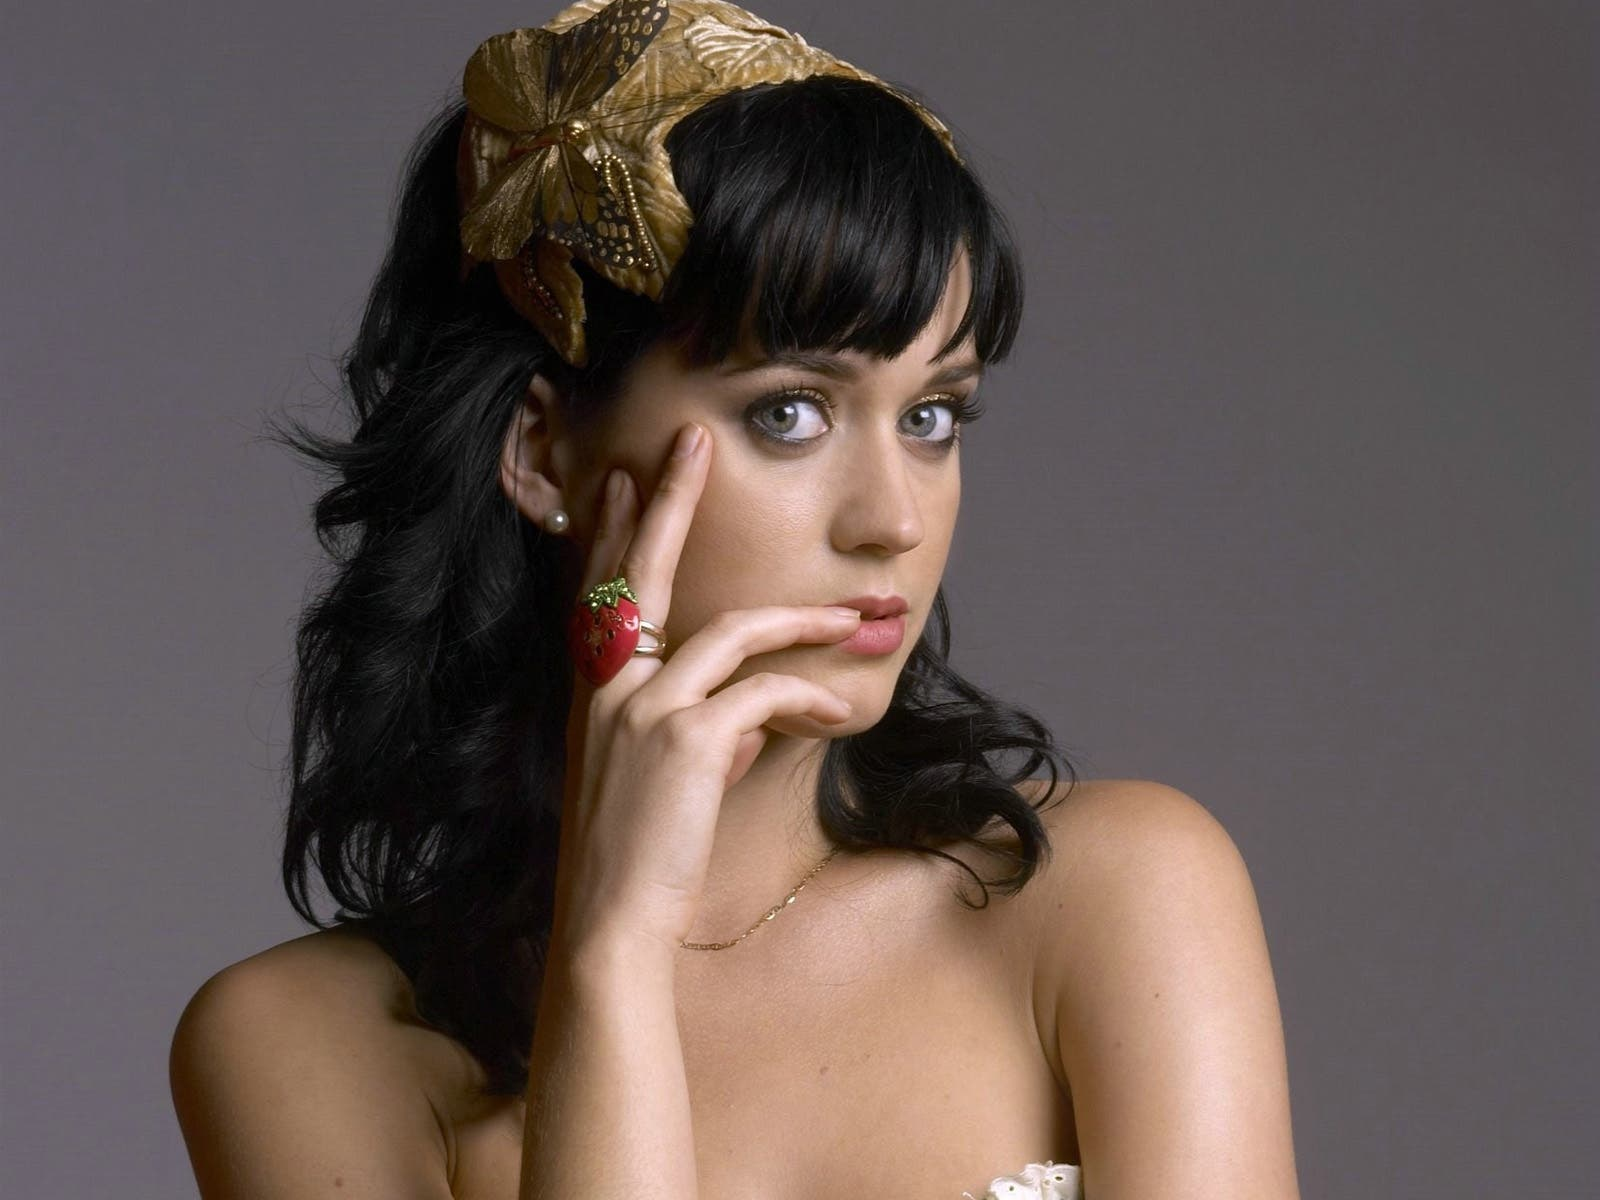 Katy Perry is the front-runner to this year's MTV Video Music Awards with 9 ...